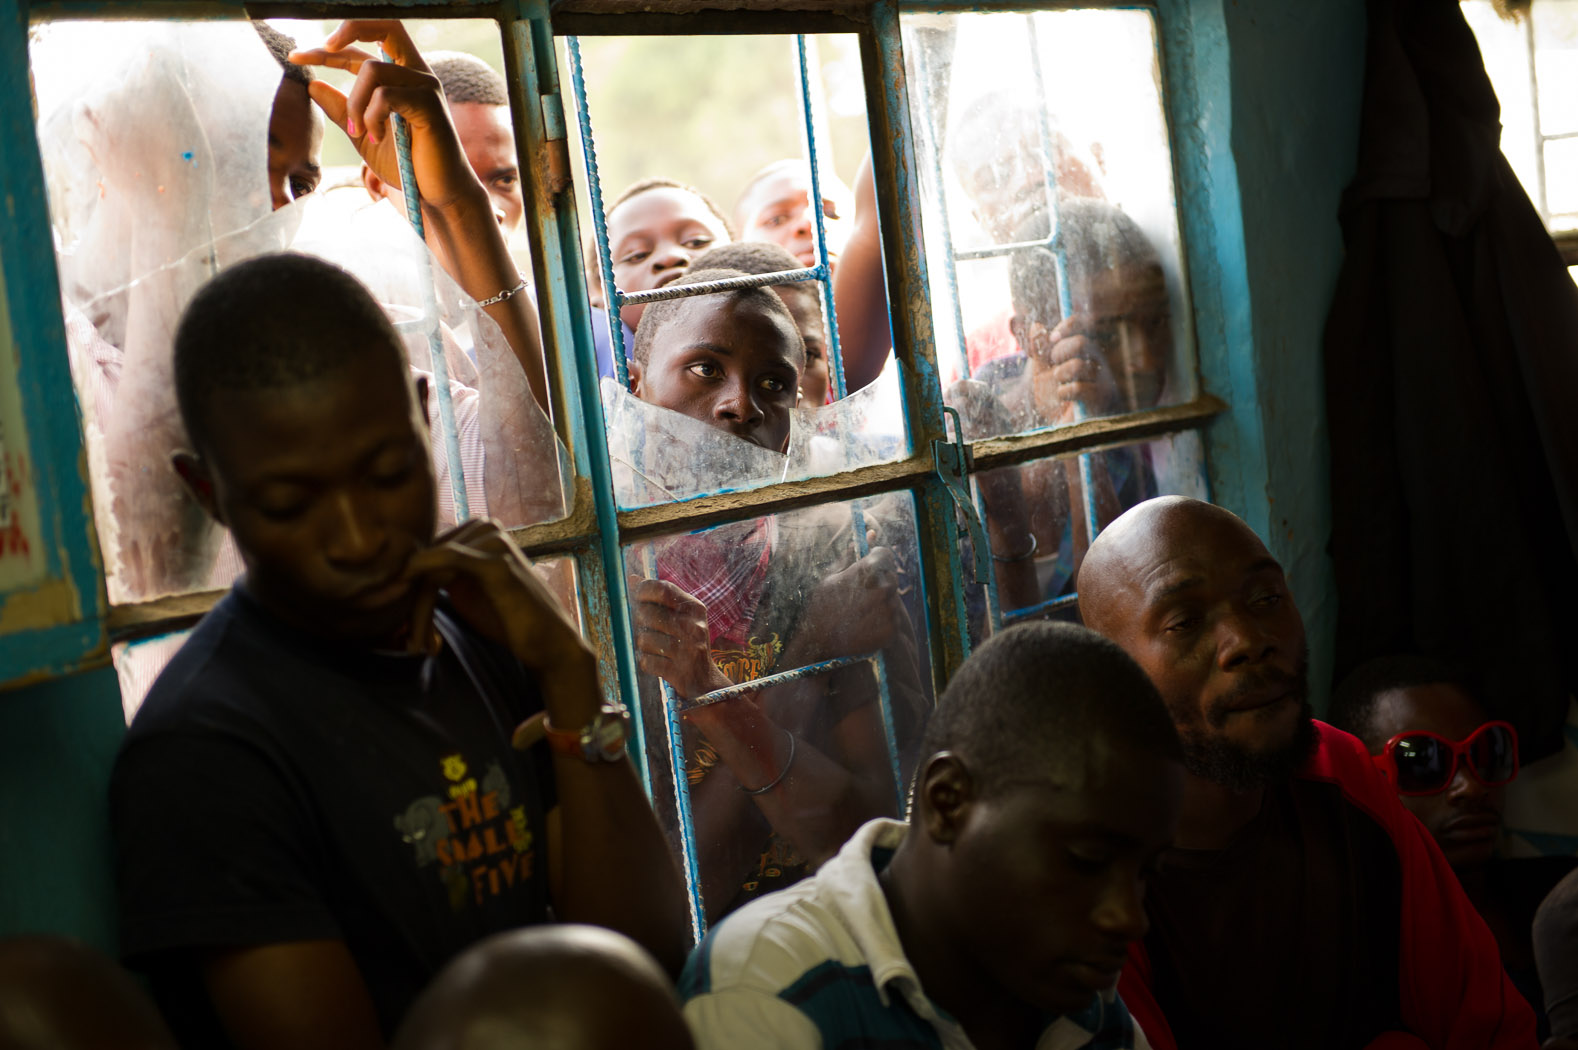 In a district of Lubumbashi largely populated with opposition supporters, men peer through the window of a barbershop to watch the results.